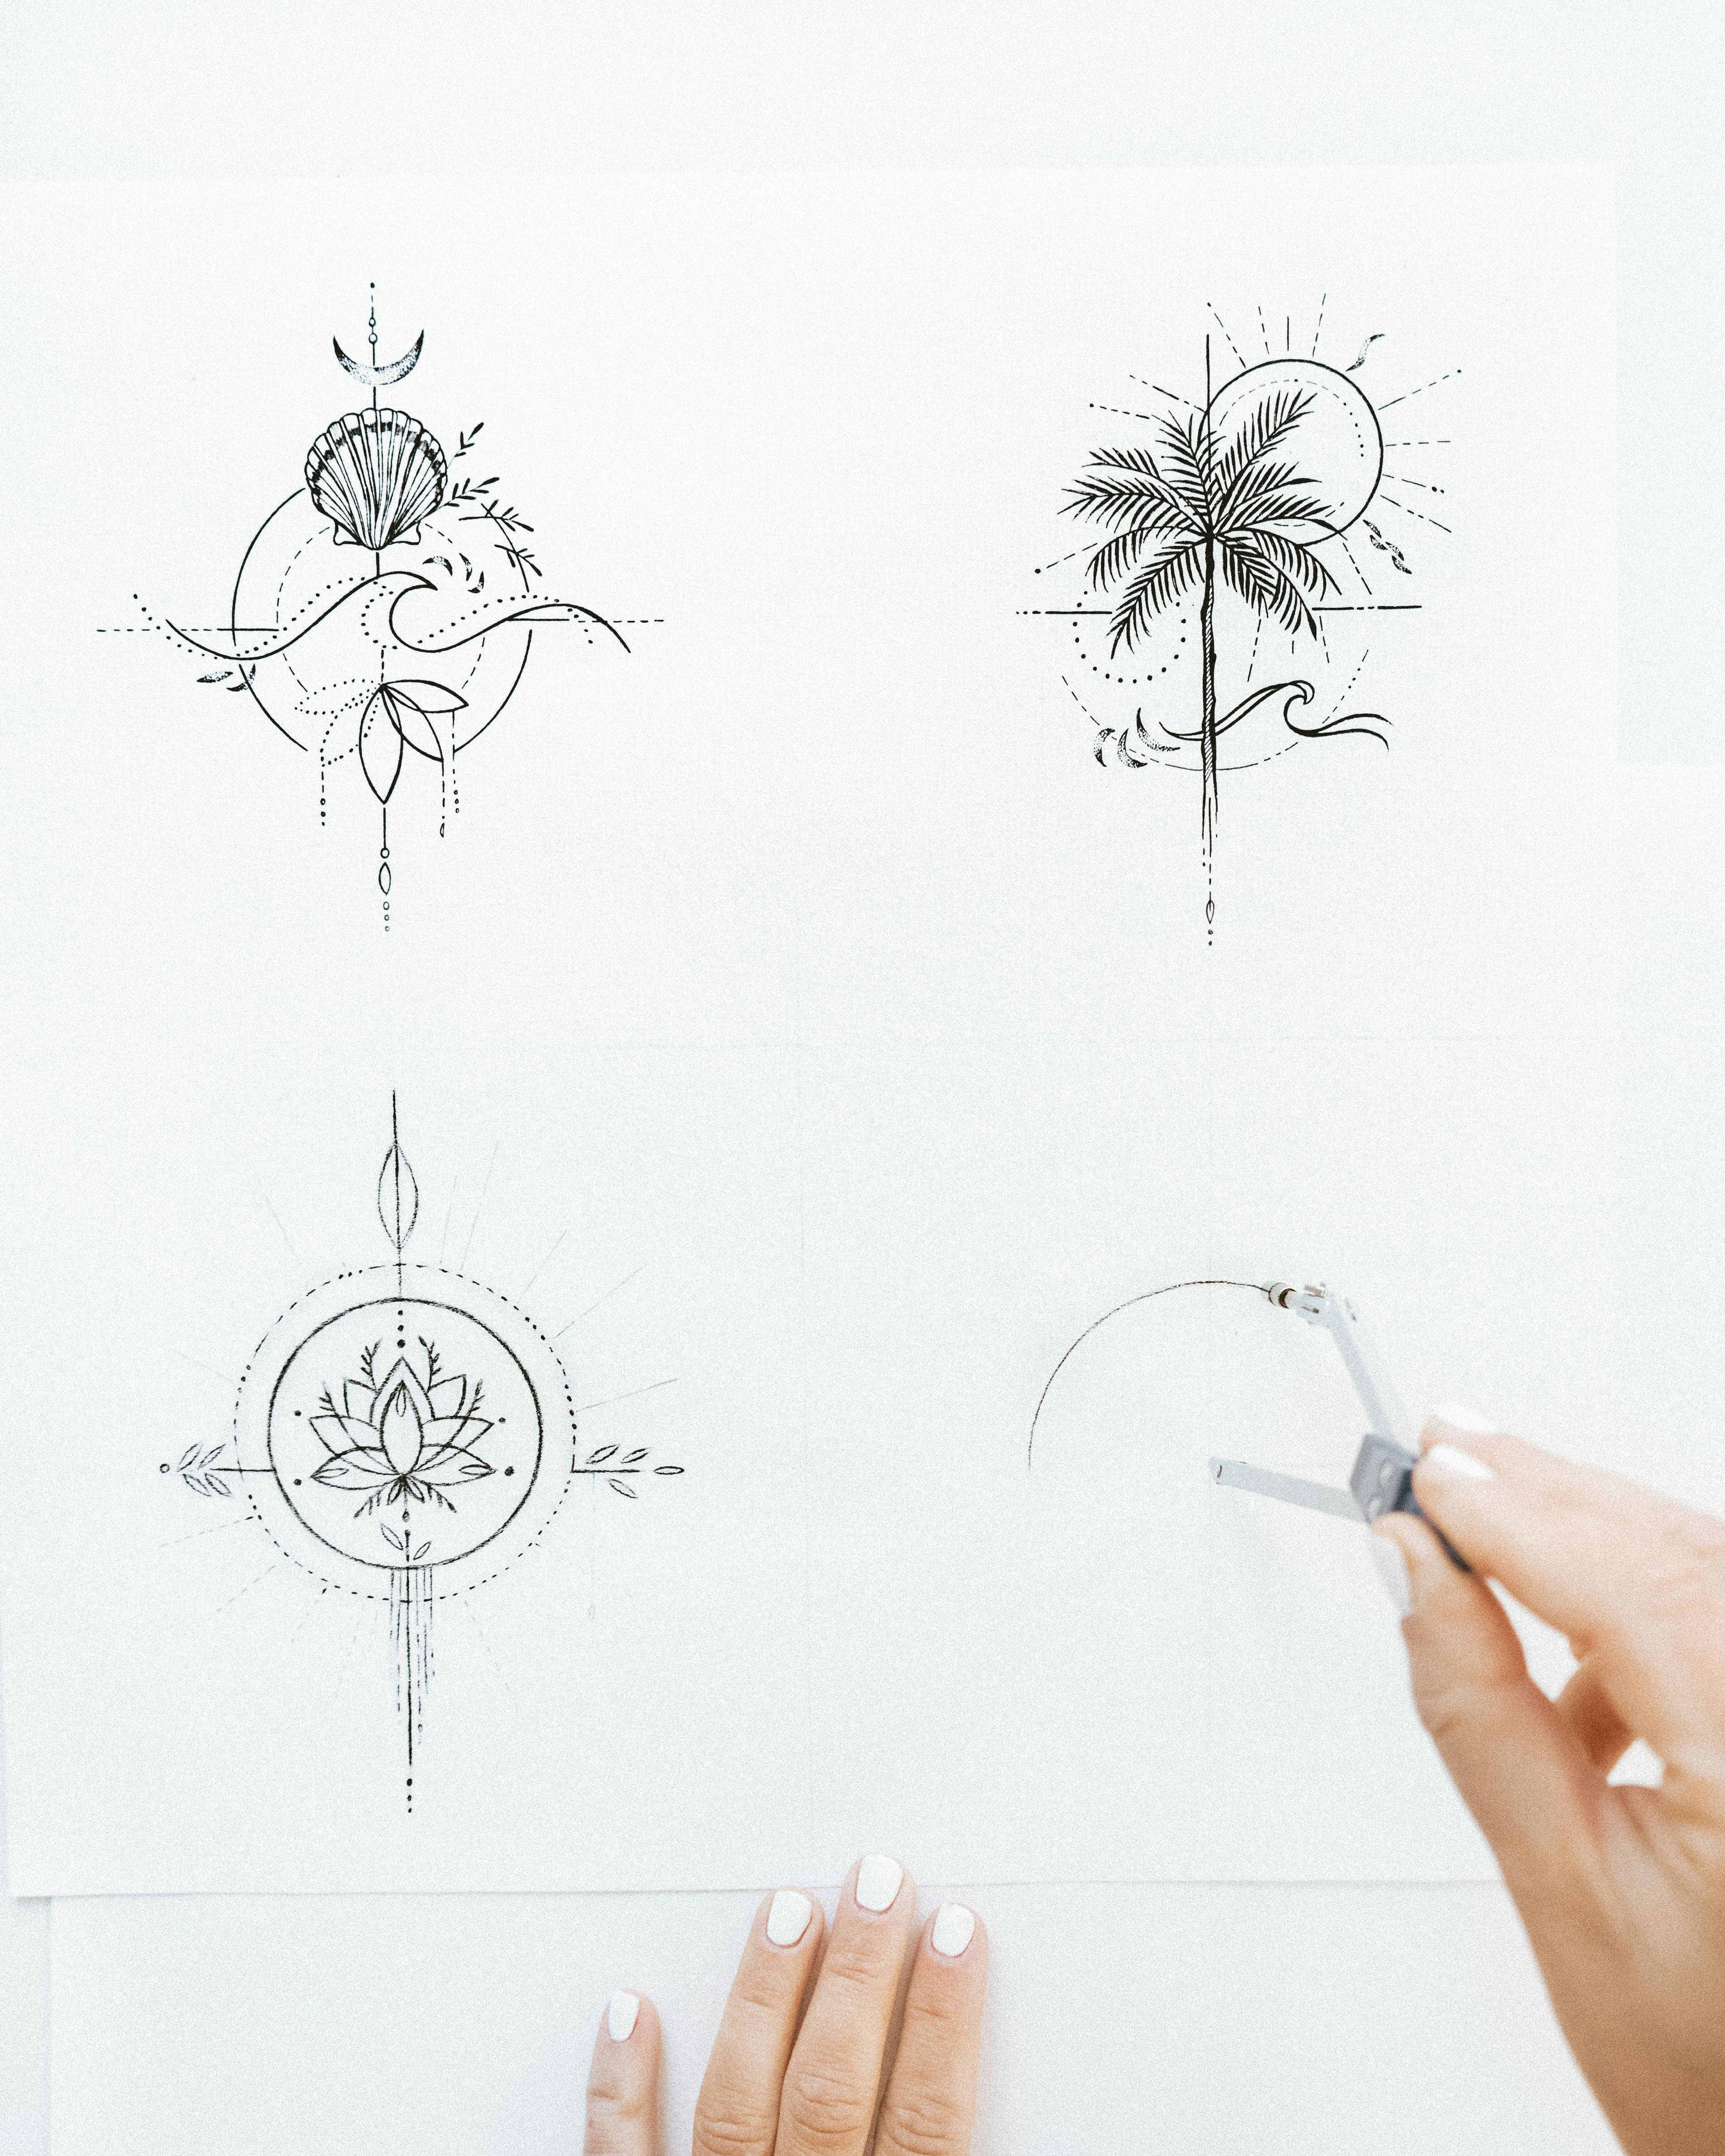 Travel tattoo – palm tree, wave, lotus line-drawing artwork perfect for small tiny tattoo idea